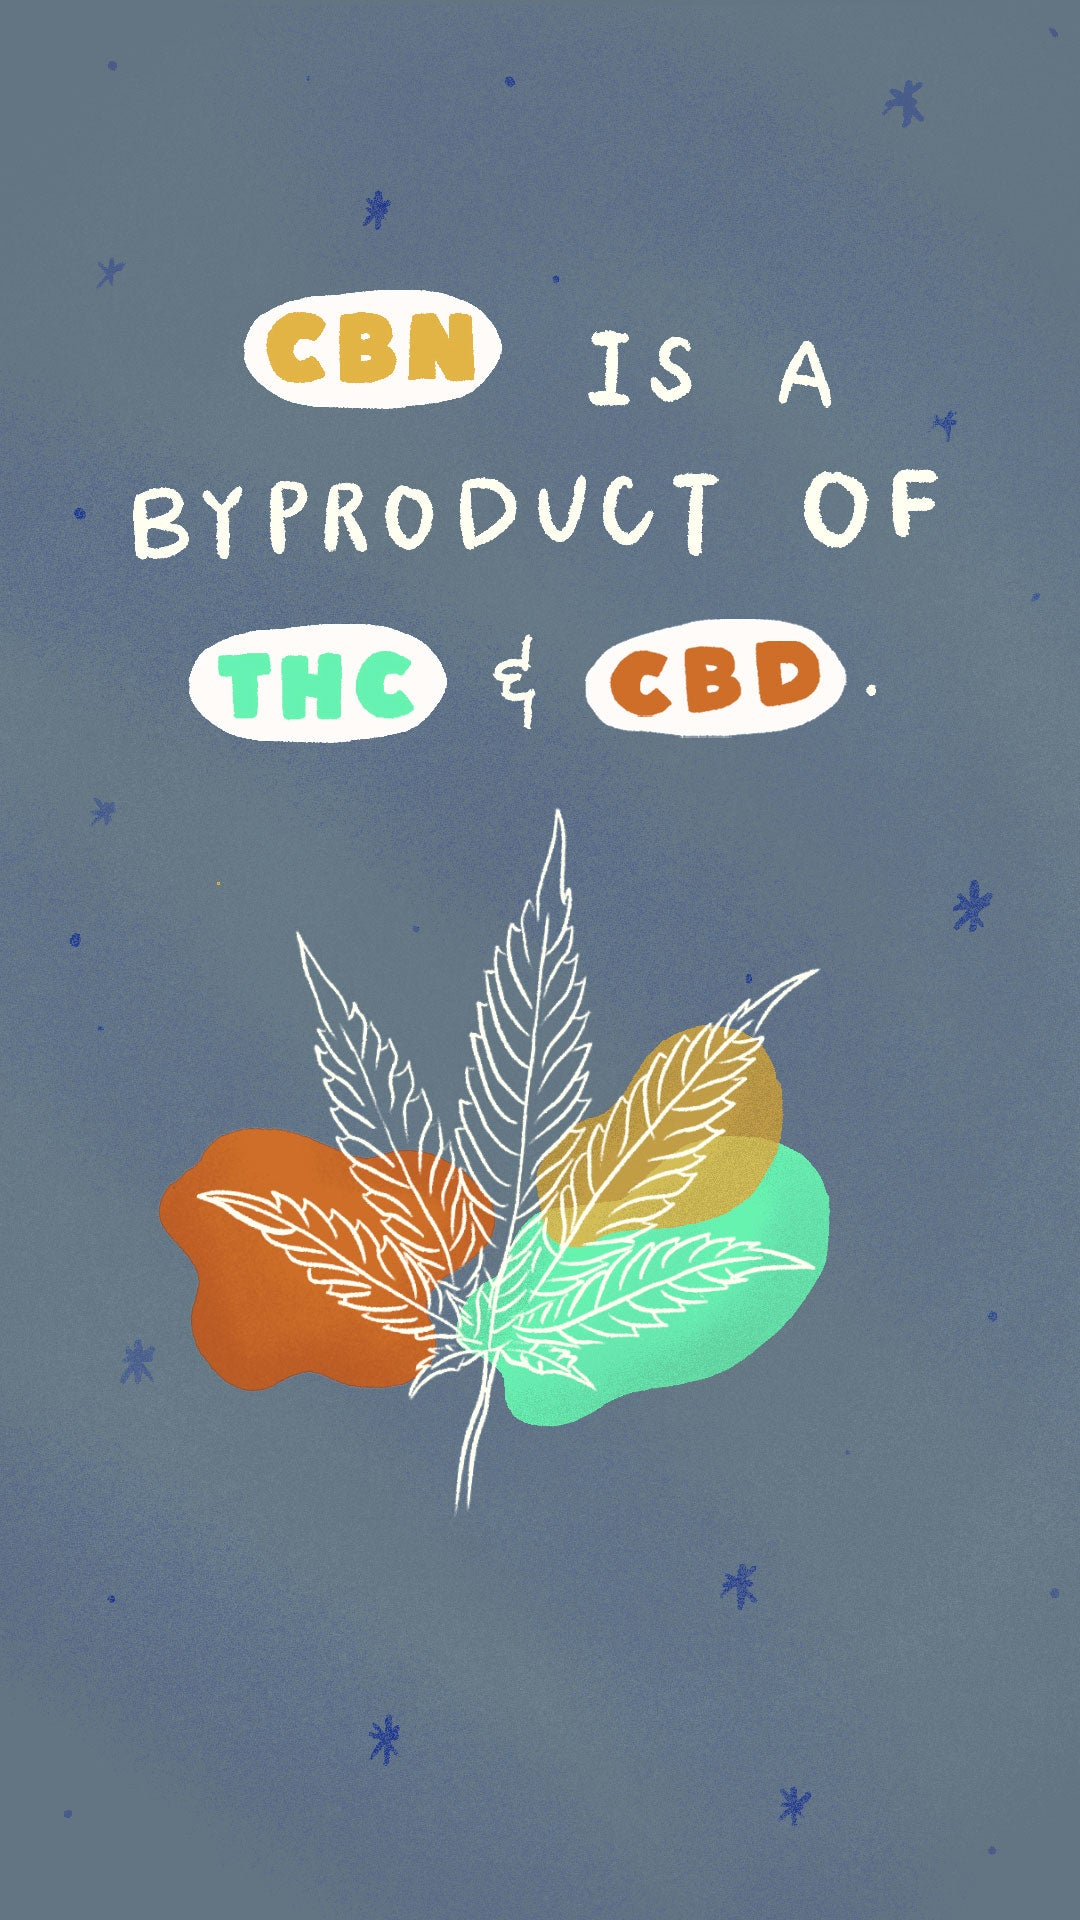 CBN is a byproduct of THC.